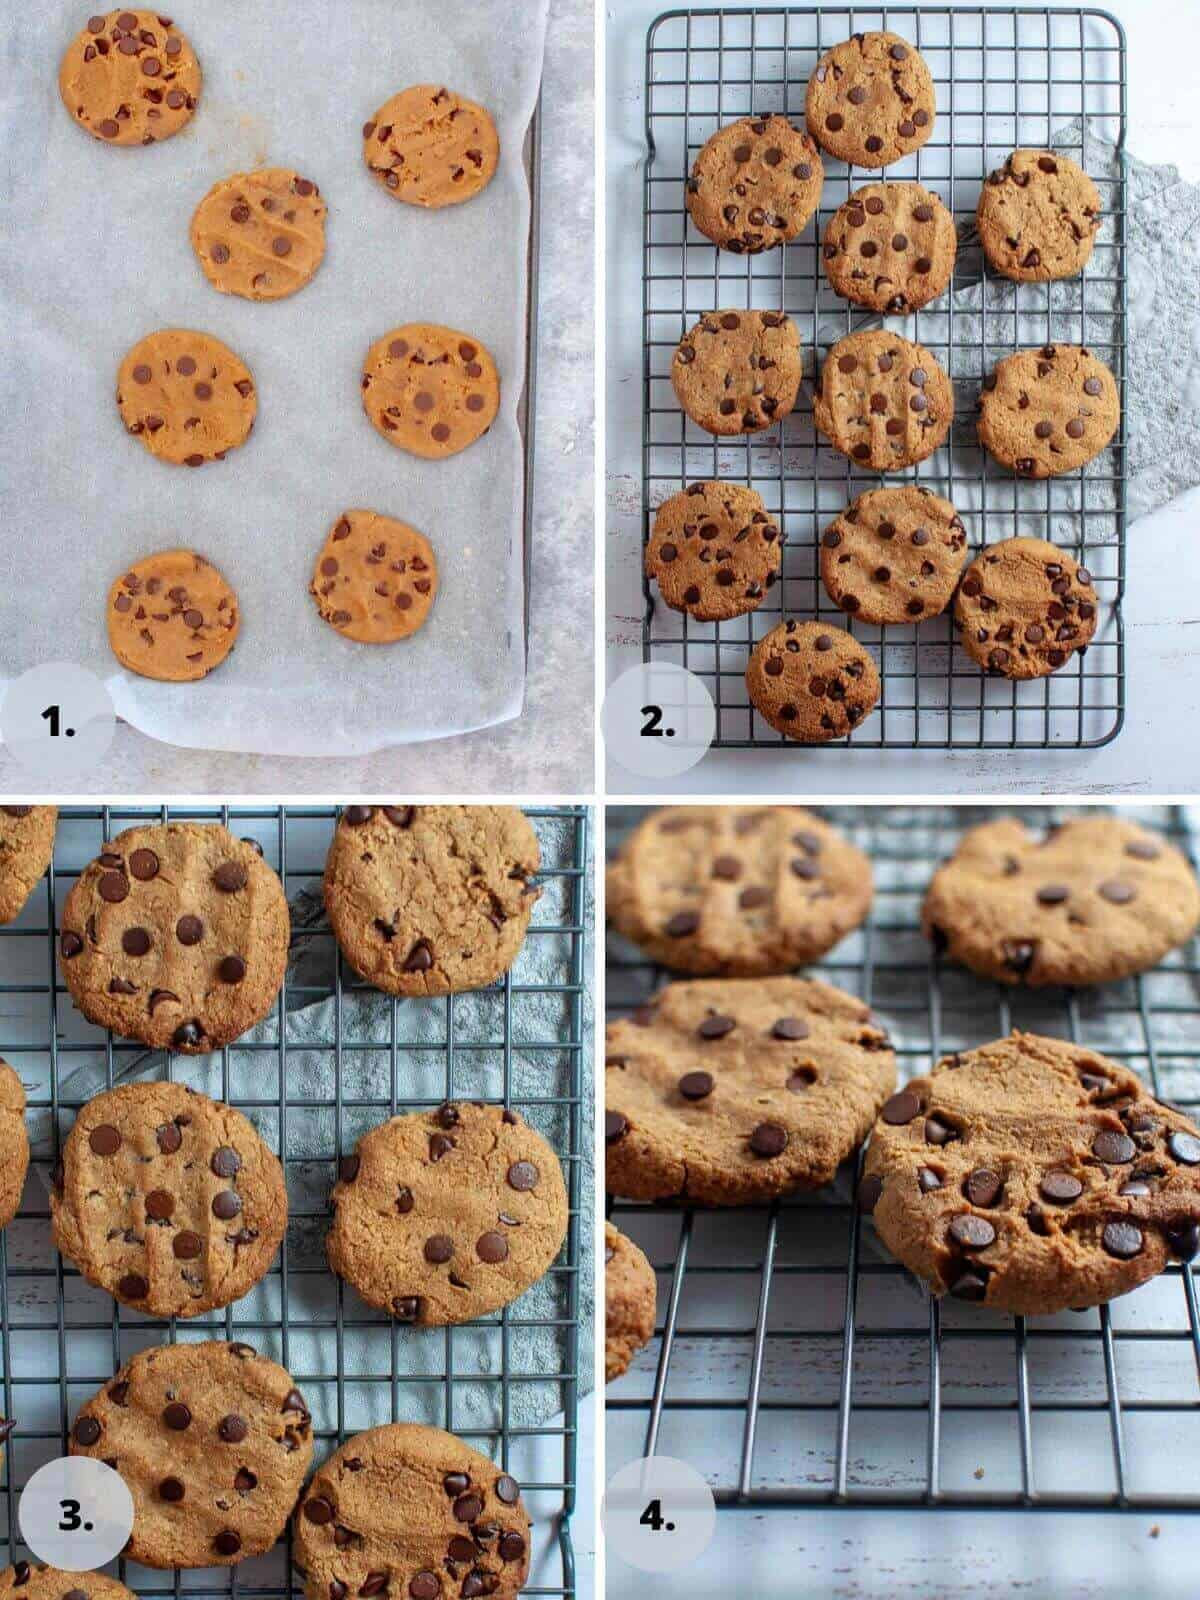 Chickpea chocolate chip cookies before and after baking